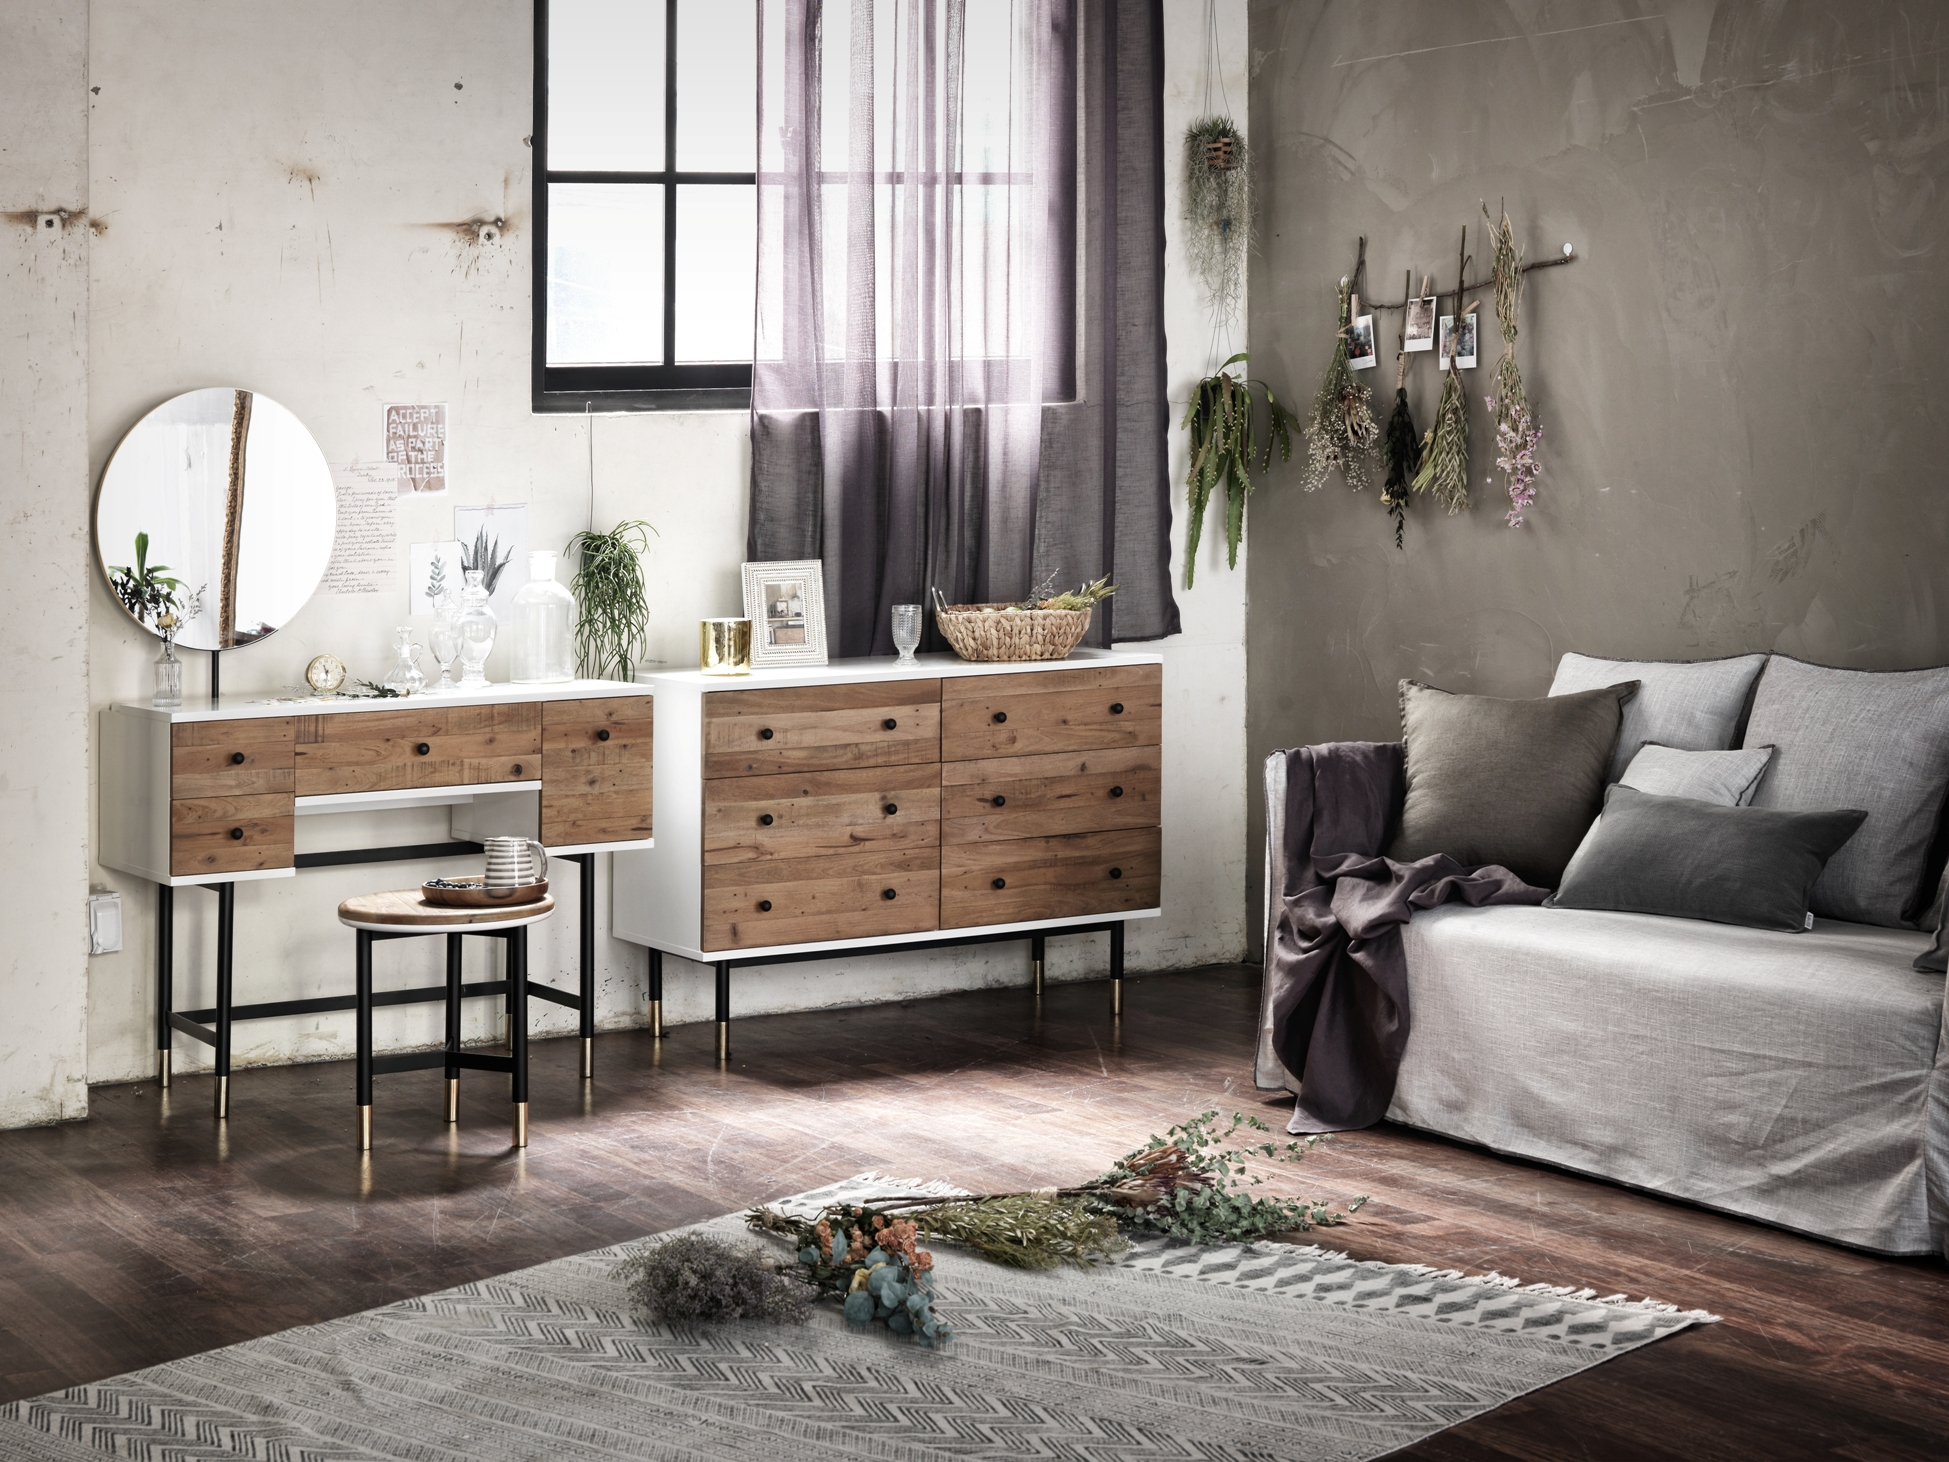 korean furniture design. MASSTIGE DECO Is The First Start Brand Of Scandinavian Style Furniture At On-line Market In Korea Since 2010. All Products And Branding Strategies Korean Design L